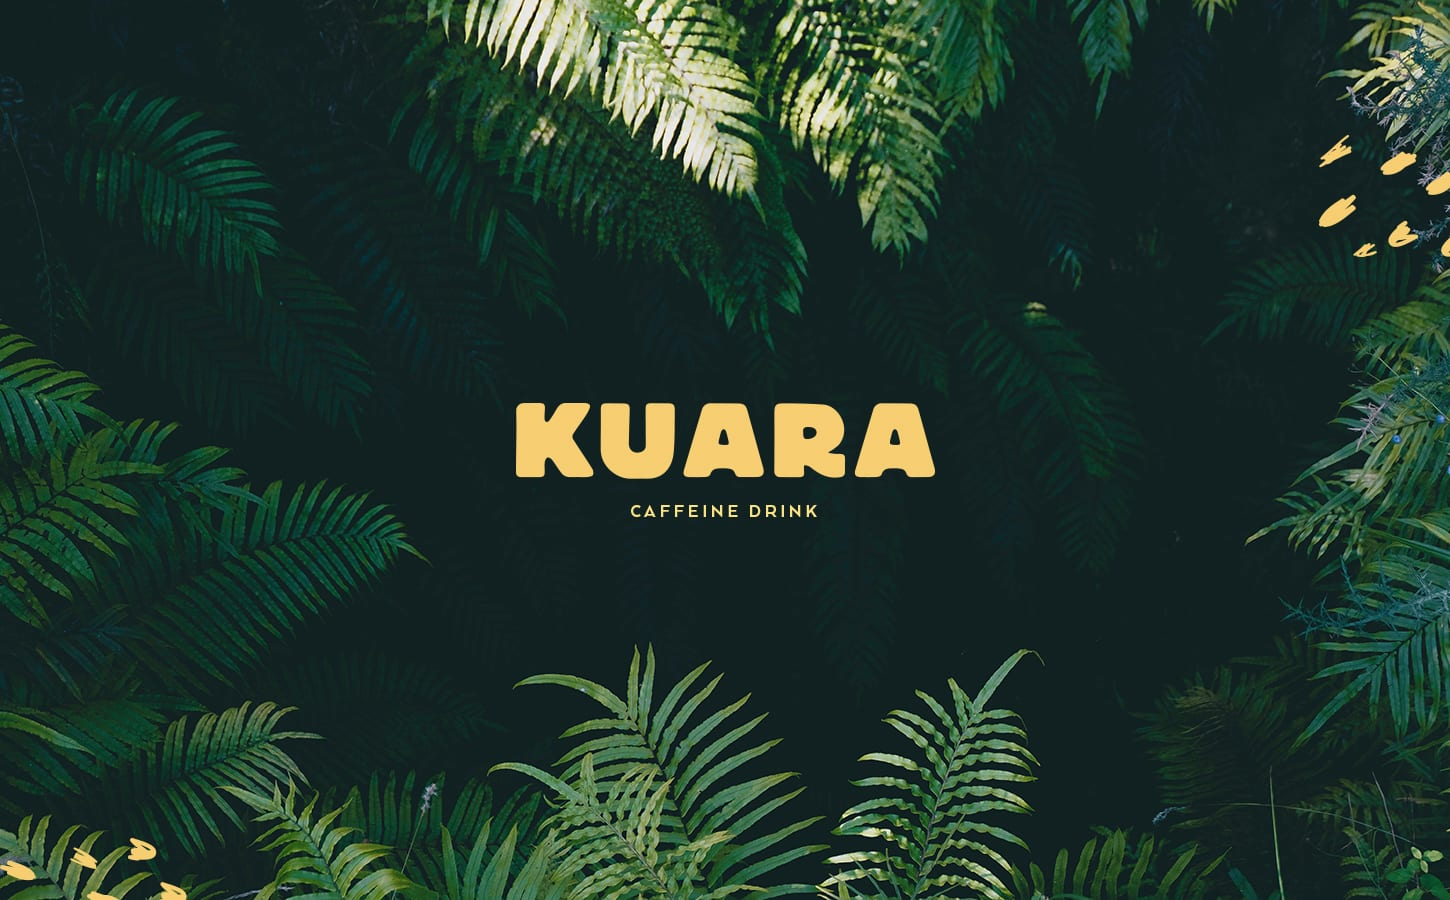 Identity and Packaging Design for Kuara Natural Energy Drink